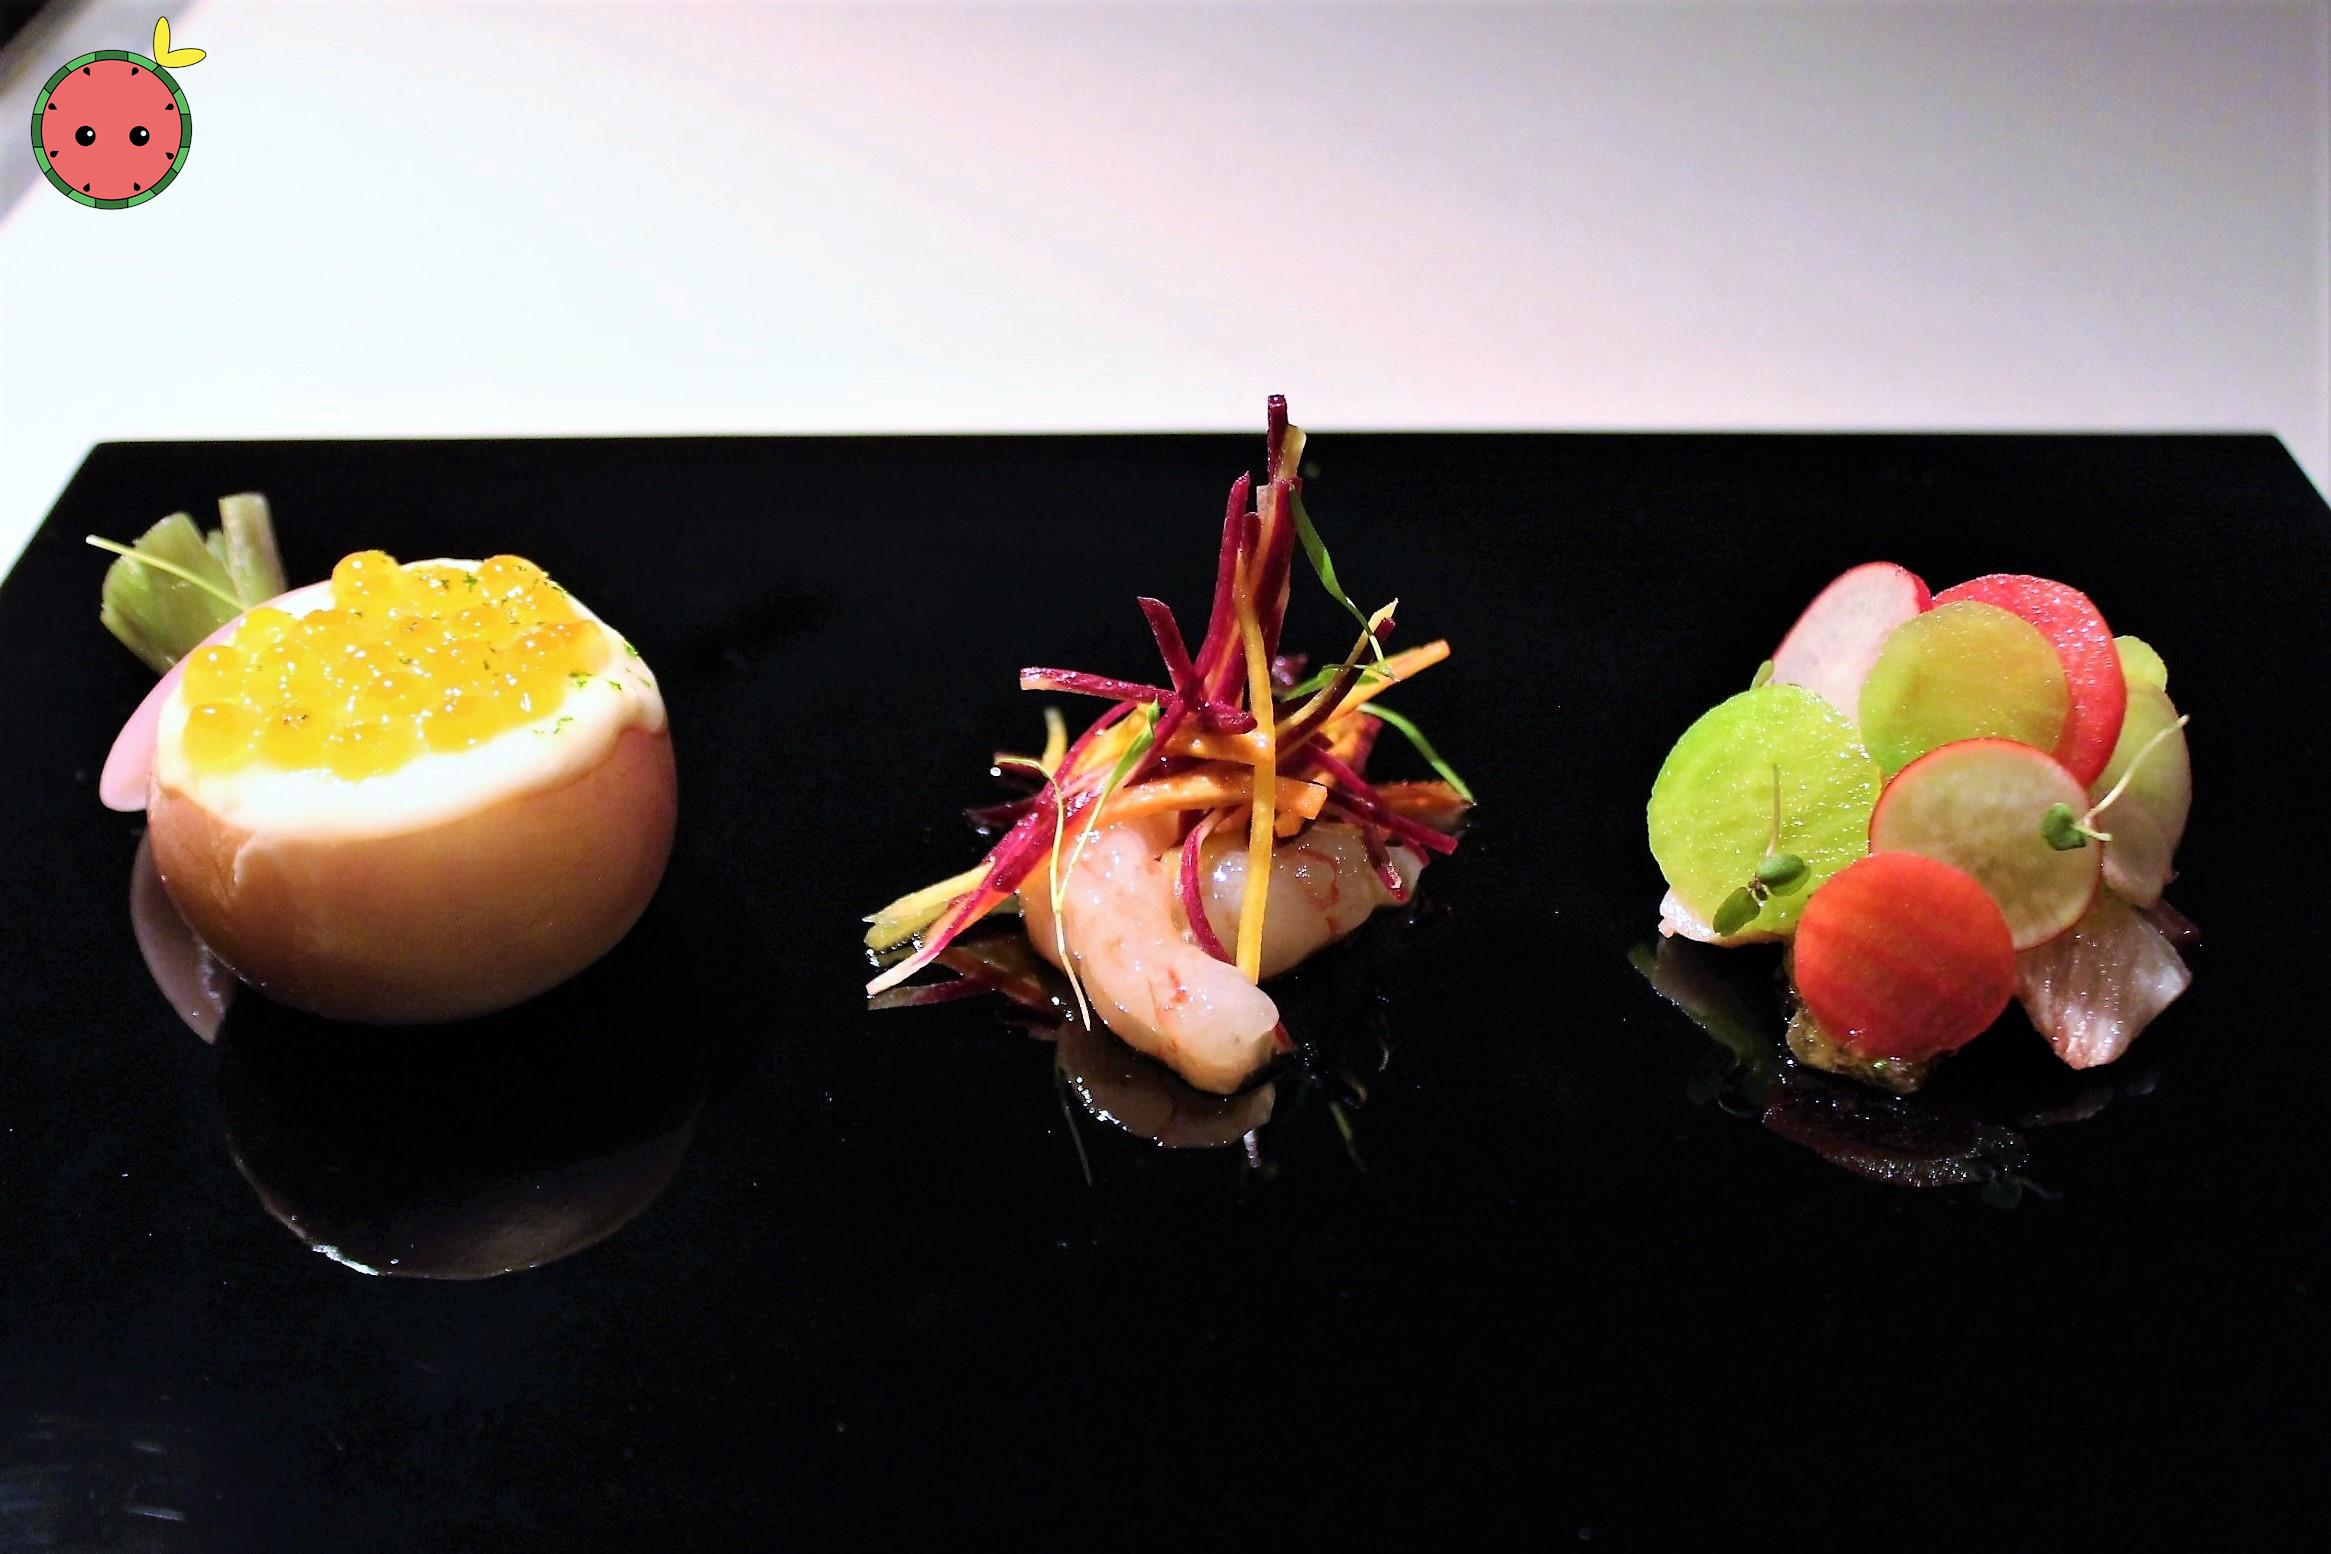 Salmon Roe & Hairy Crab in Turnip, Botan Shrimp, & Yellow Tail, Wasabi 2